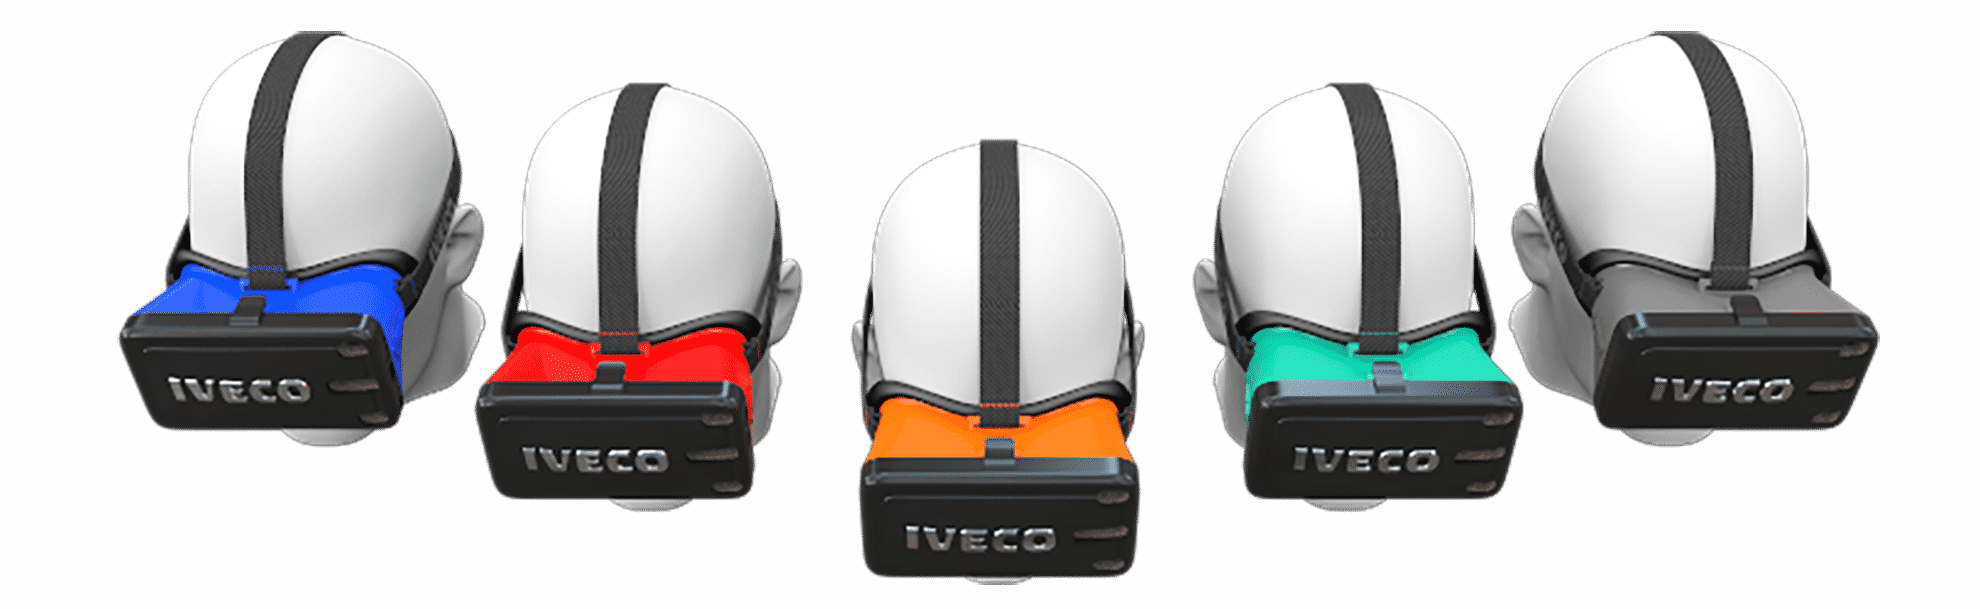 iveco-custom-virtual-reality-headset